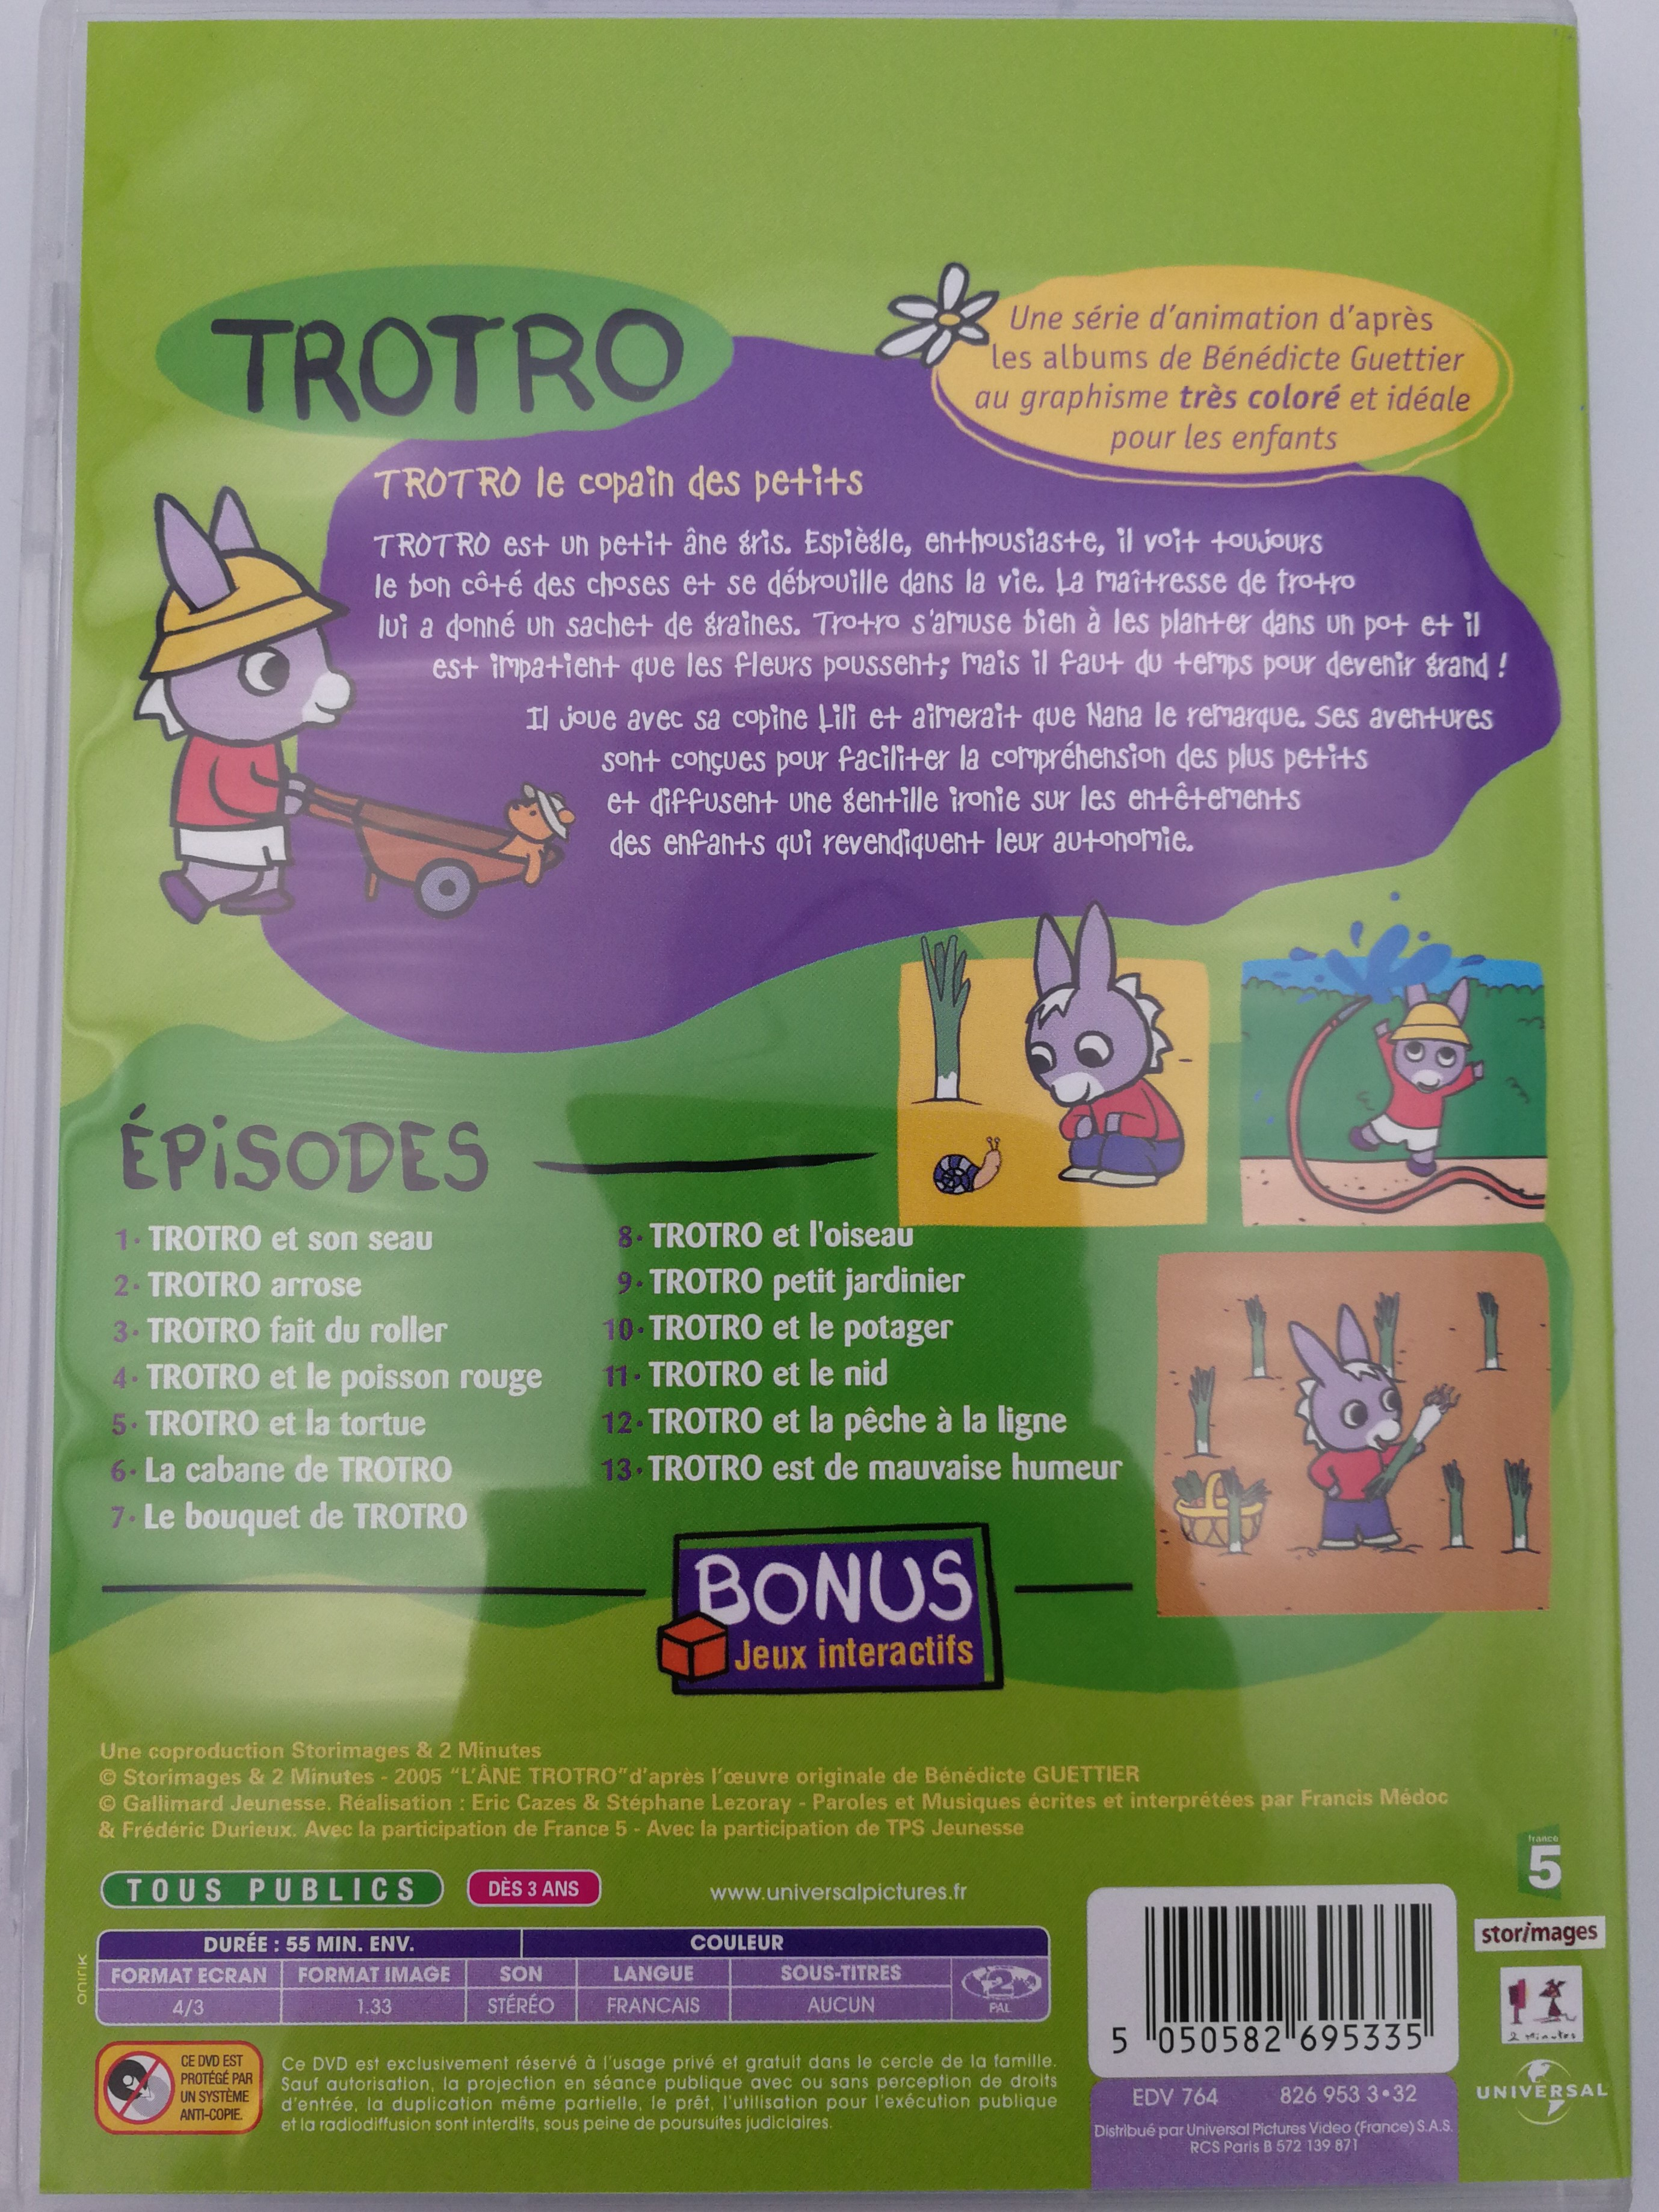 Trotro - Jardine Dvd 2004 / Bonus: Interacive Games - Jeux encequiconcerne Trotro French Cartoon